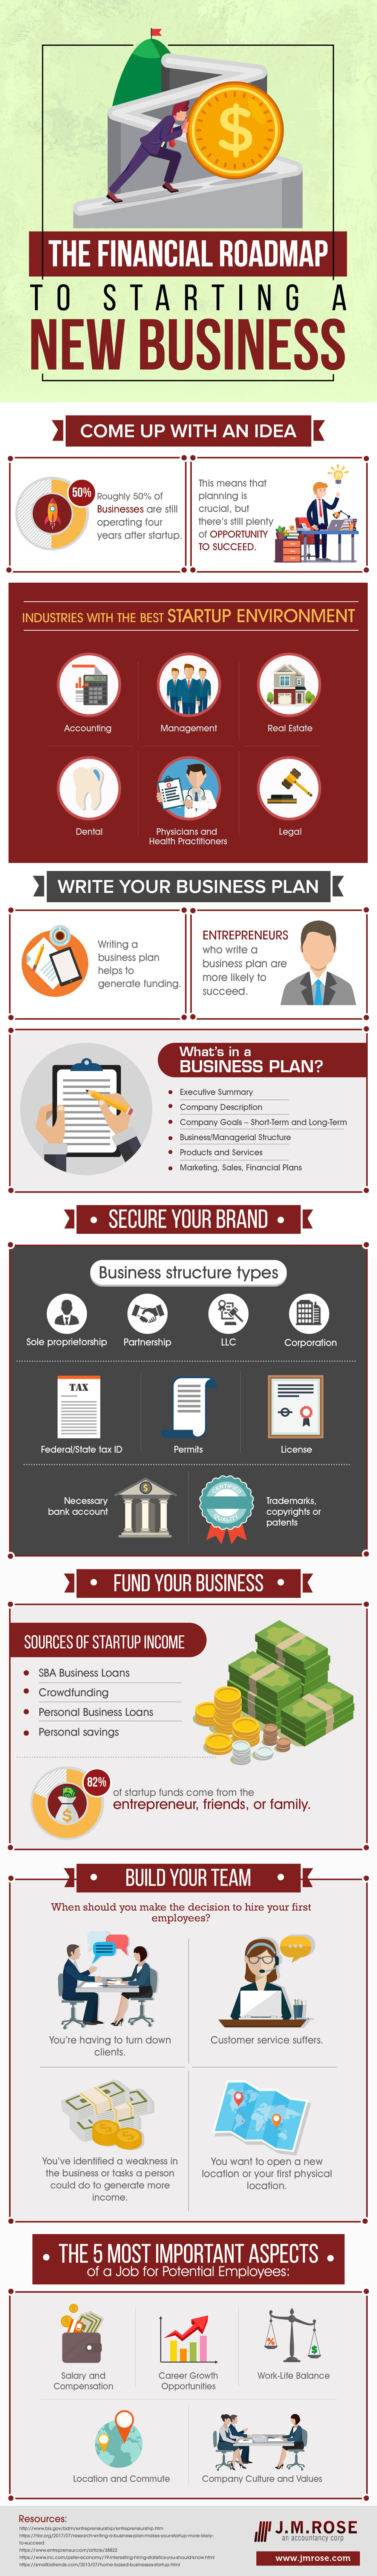 The Financial Road Map to Starting a New Business Infographic